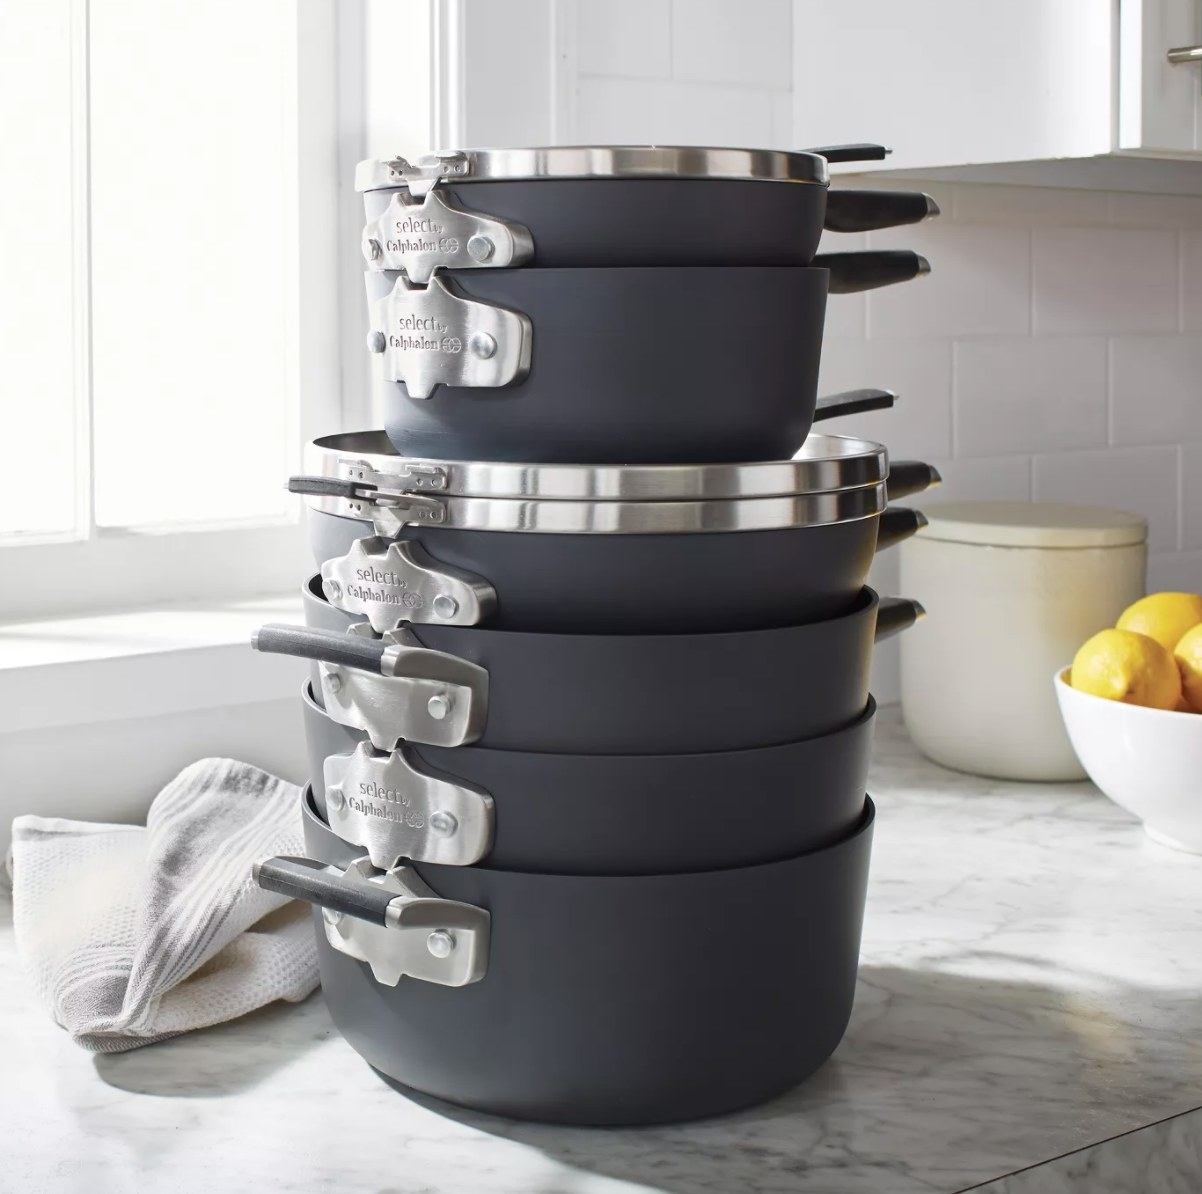 the stackable cookware set